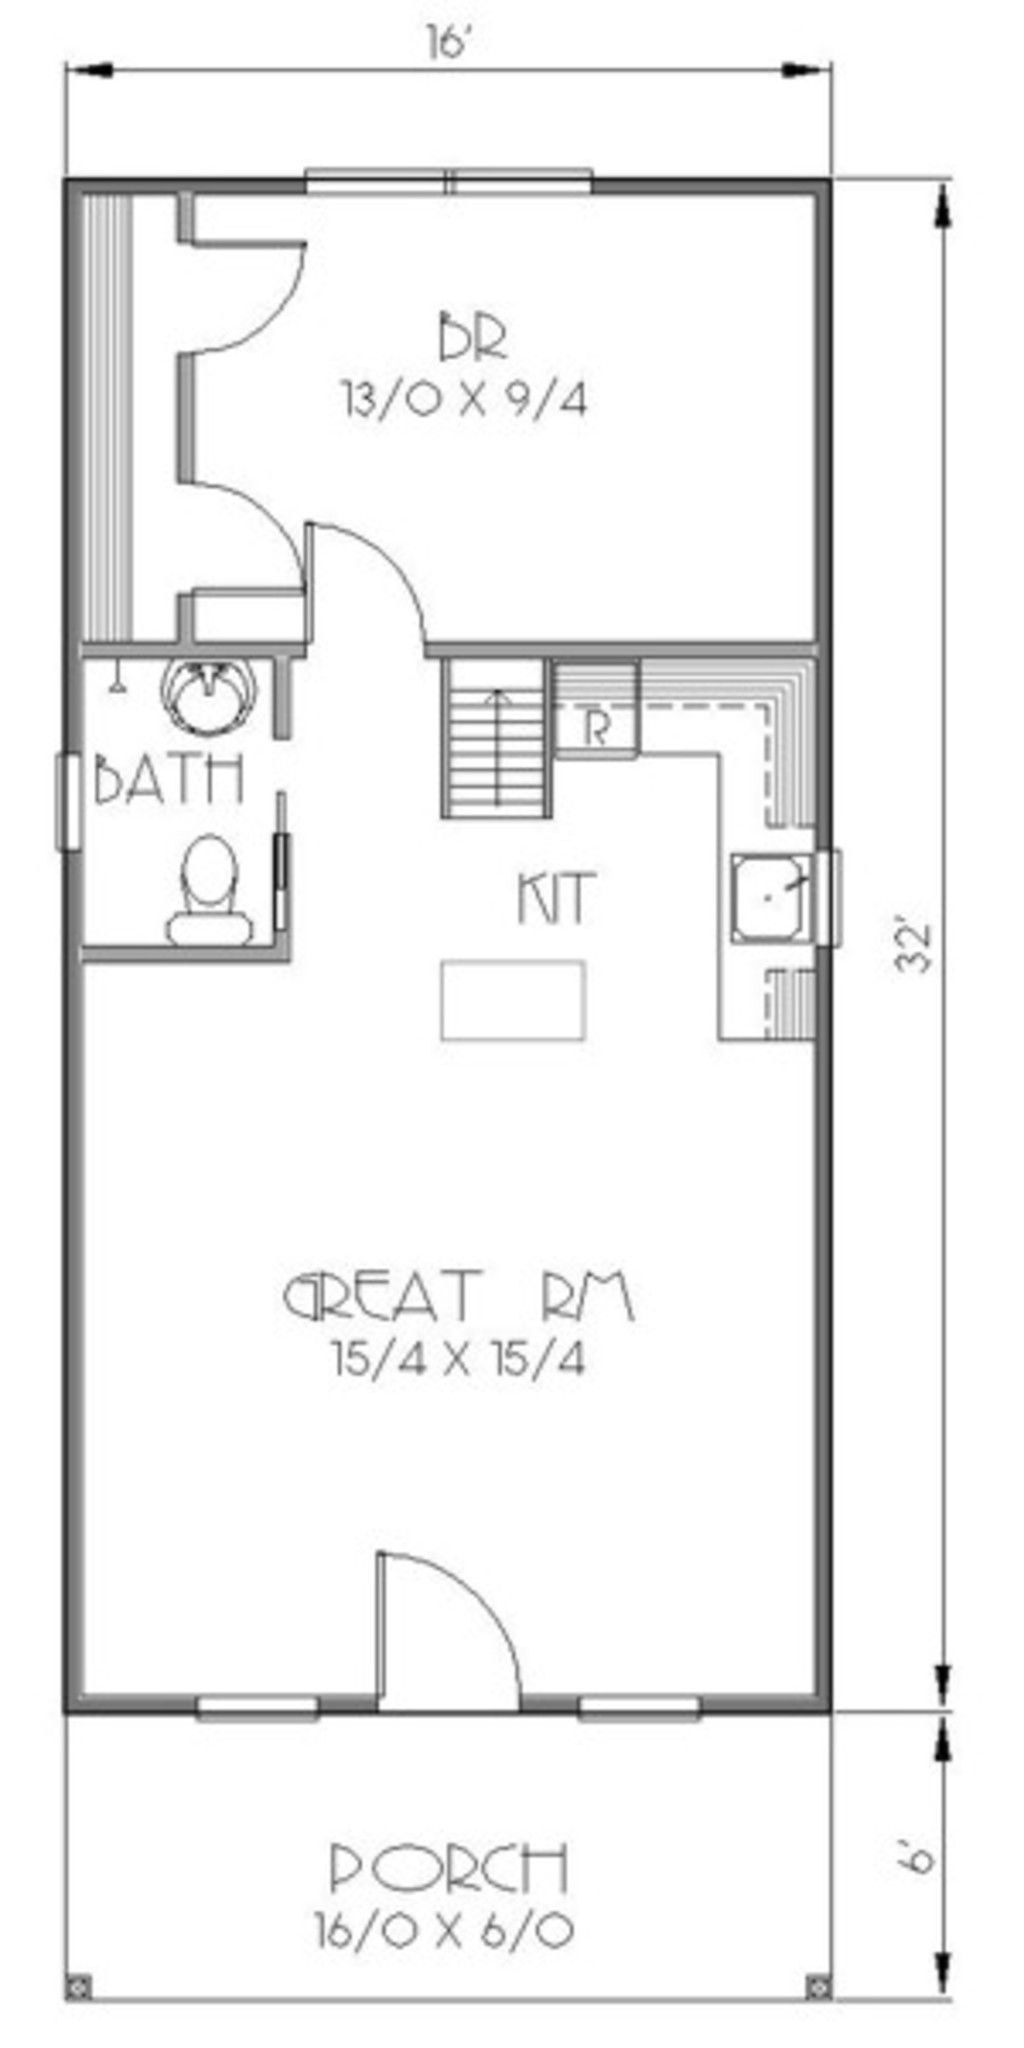 7 Bedroom House For Rent: 1 Beds 1 Baths 812 Sq/Ft Plan